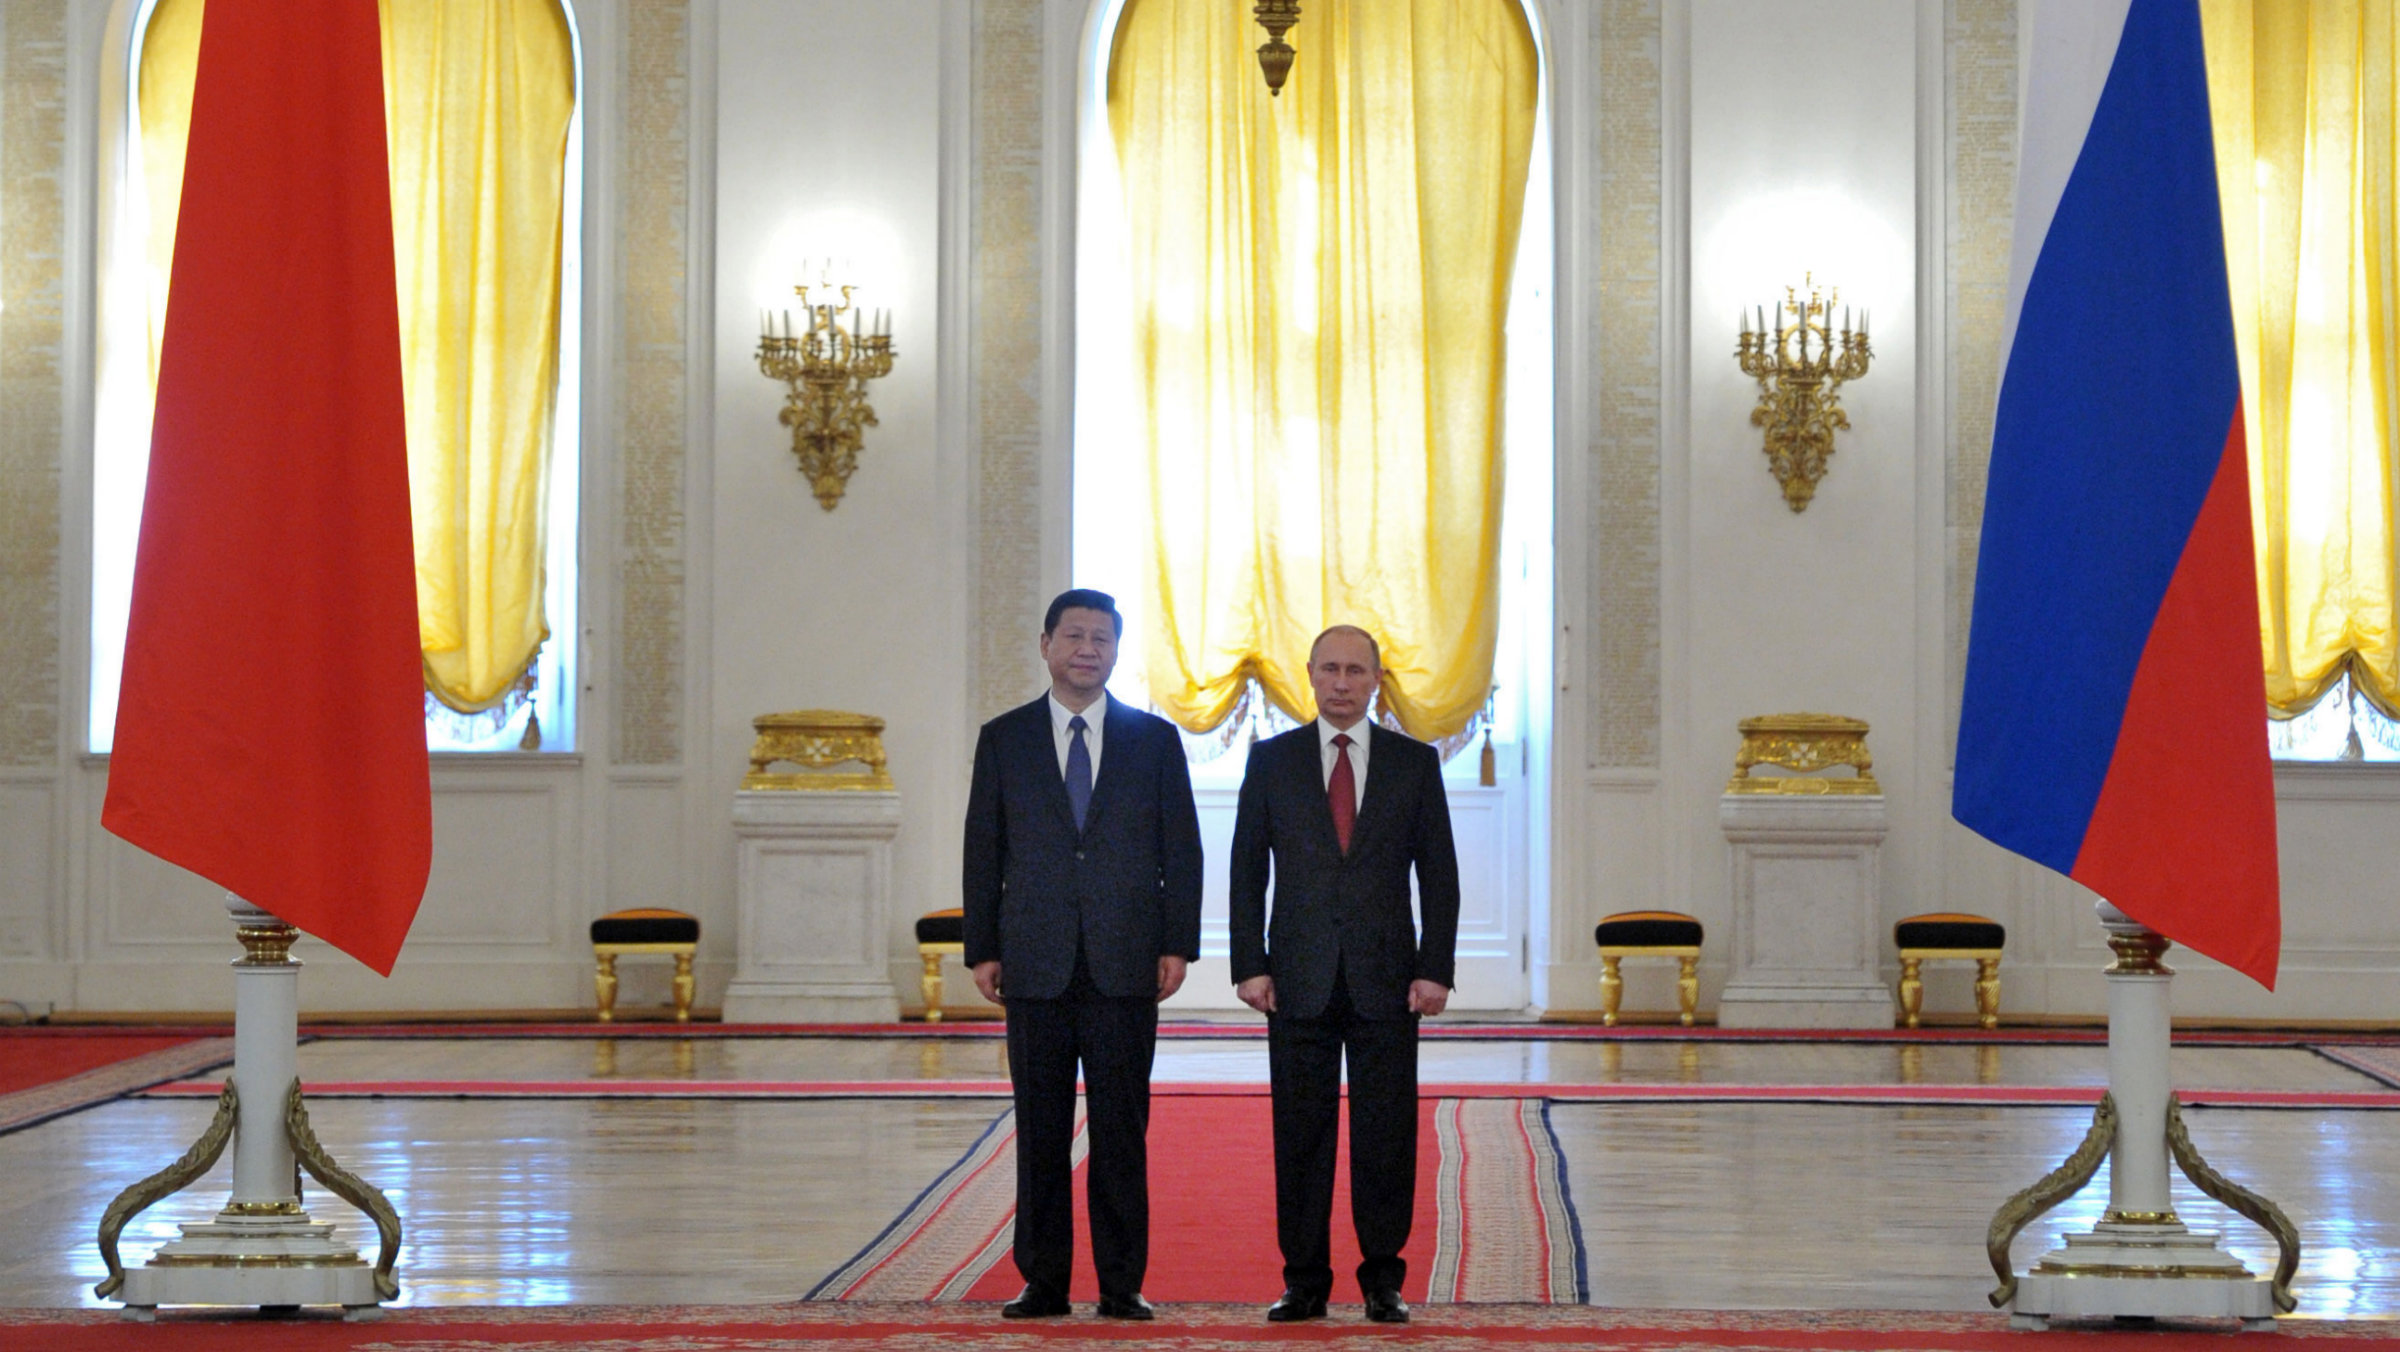 Russian President Vladimir Putin, right, and Chinese President Xi Jinping meet in the Grand Kremlin Palace in Moscow, Russia, Friday, March 22, 2013. Vladimir Putin rolled out a grandiose reception Friday for China's new president, who has chosen Moscow as his first foreign destination, underlining close ties between the former Cold War-era rivals that are anchored in energy interests and a shared aspiration to curtail the U.S. influence. (AP Photo/RIA-Novosti, Alexei Nikolsky, Presidential Press Service,Pool)